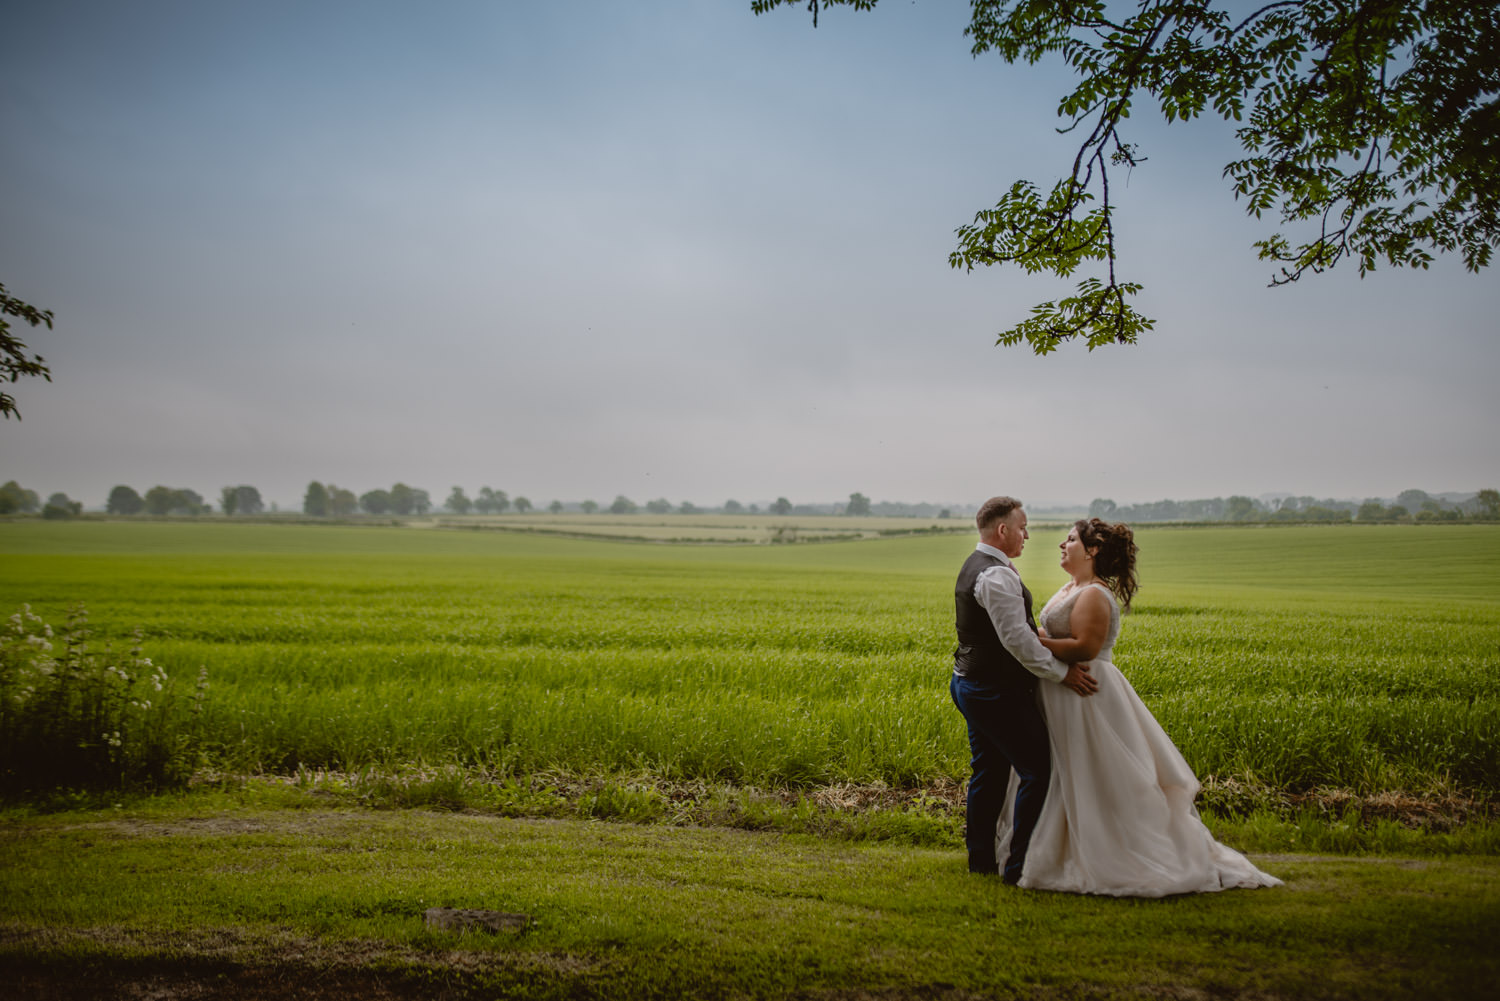 Wedding Photos at Cripps Barn Gloucestershire